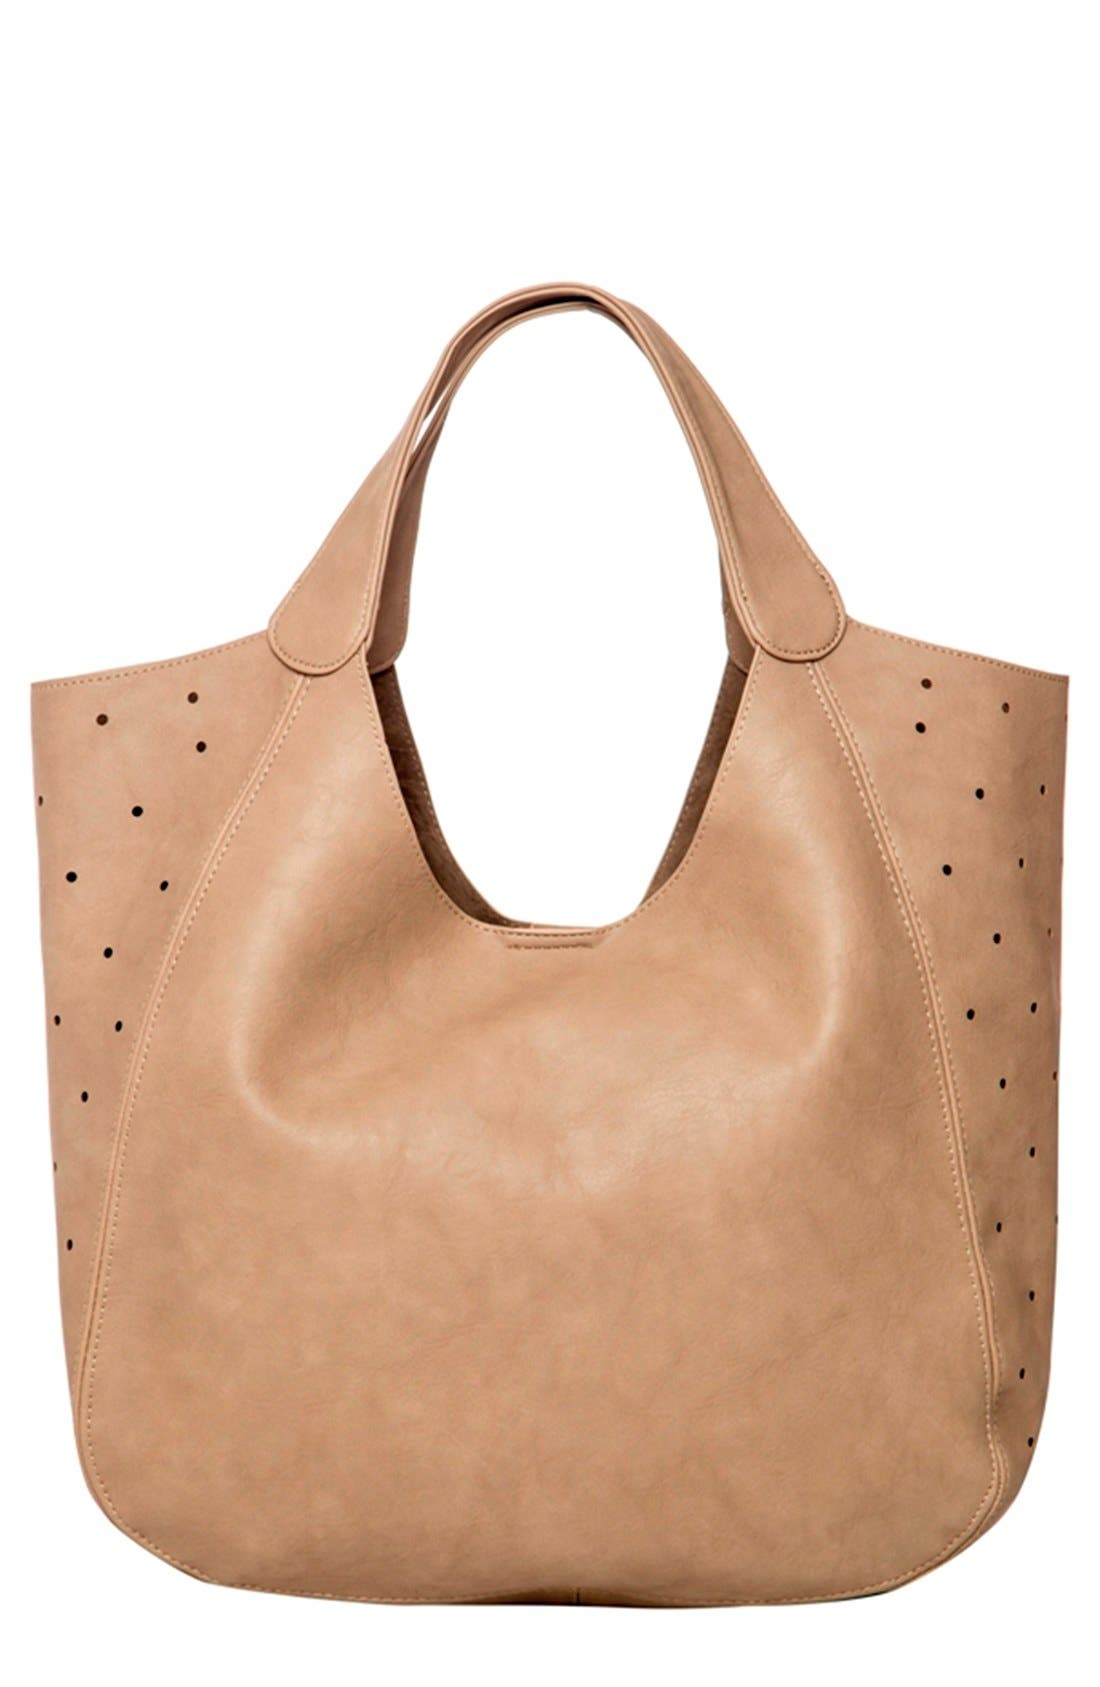 MASTERPIECE PERFORATED VEGAN LEATHER TOTE - GREY